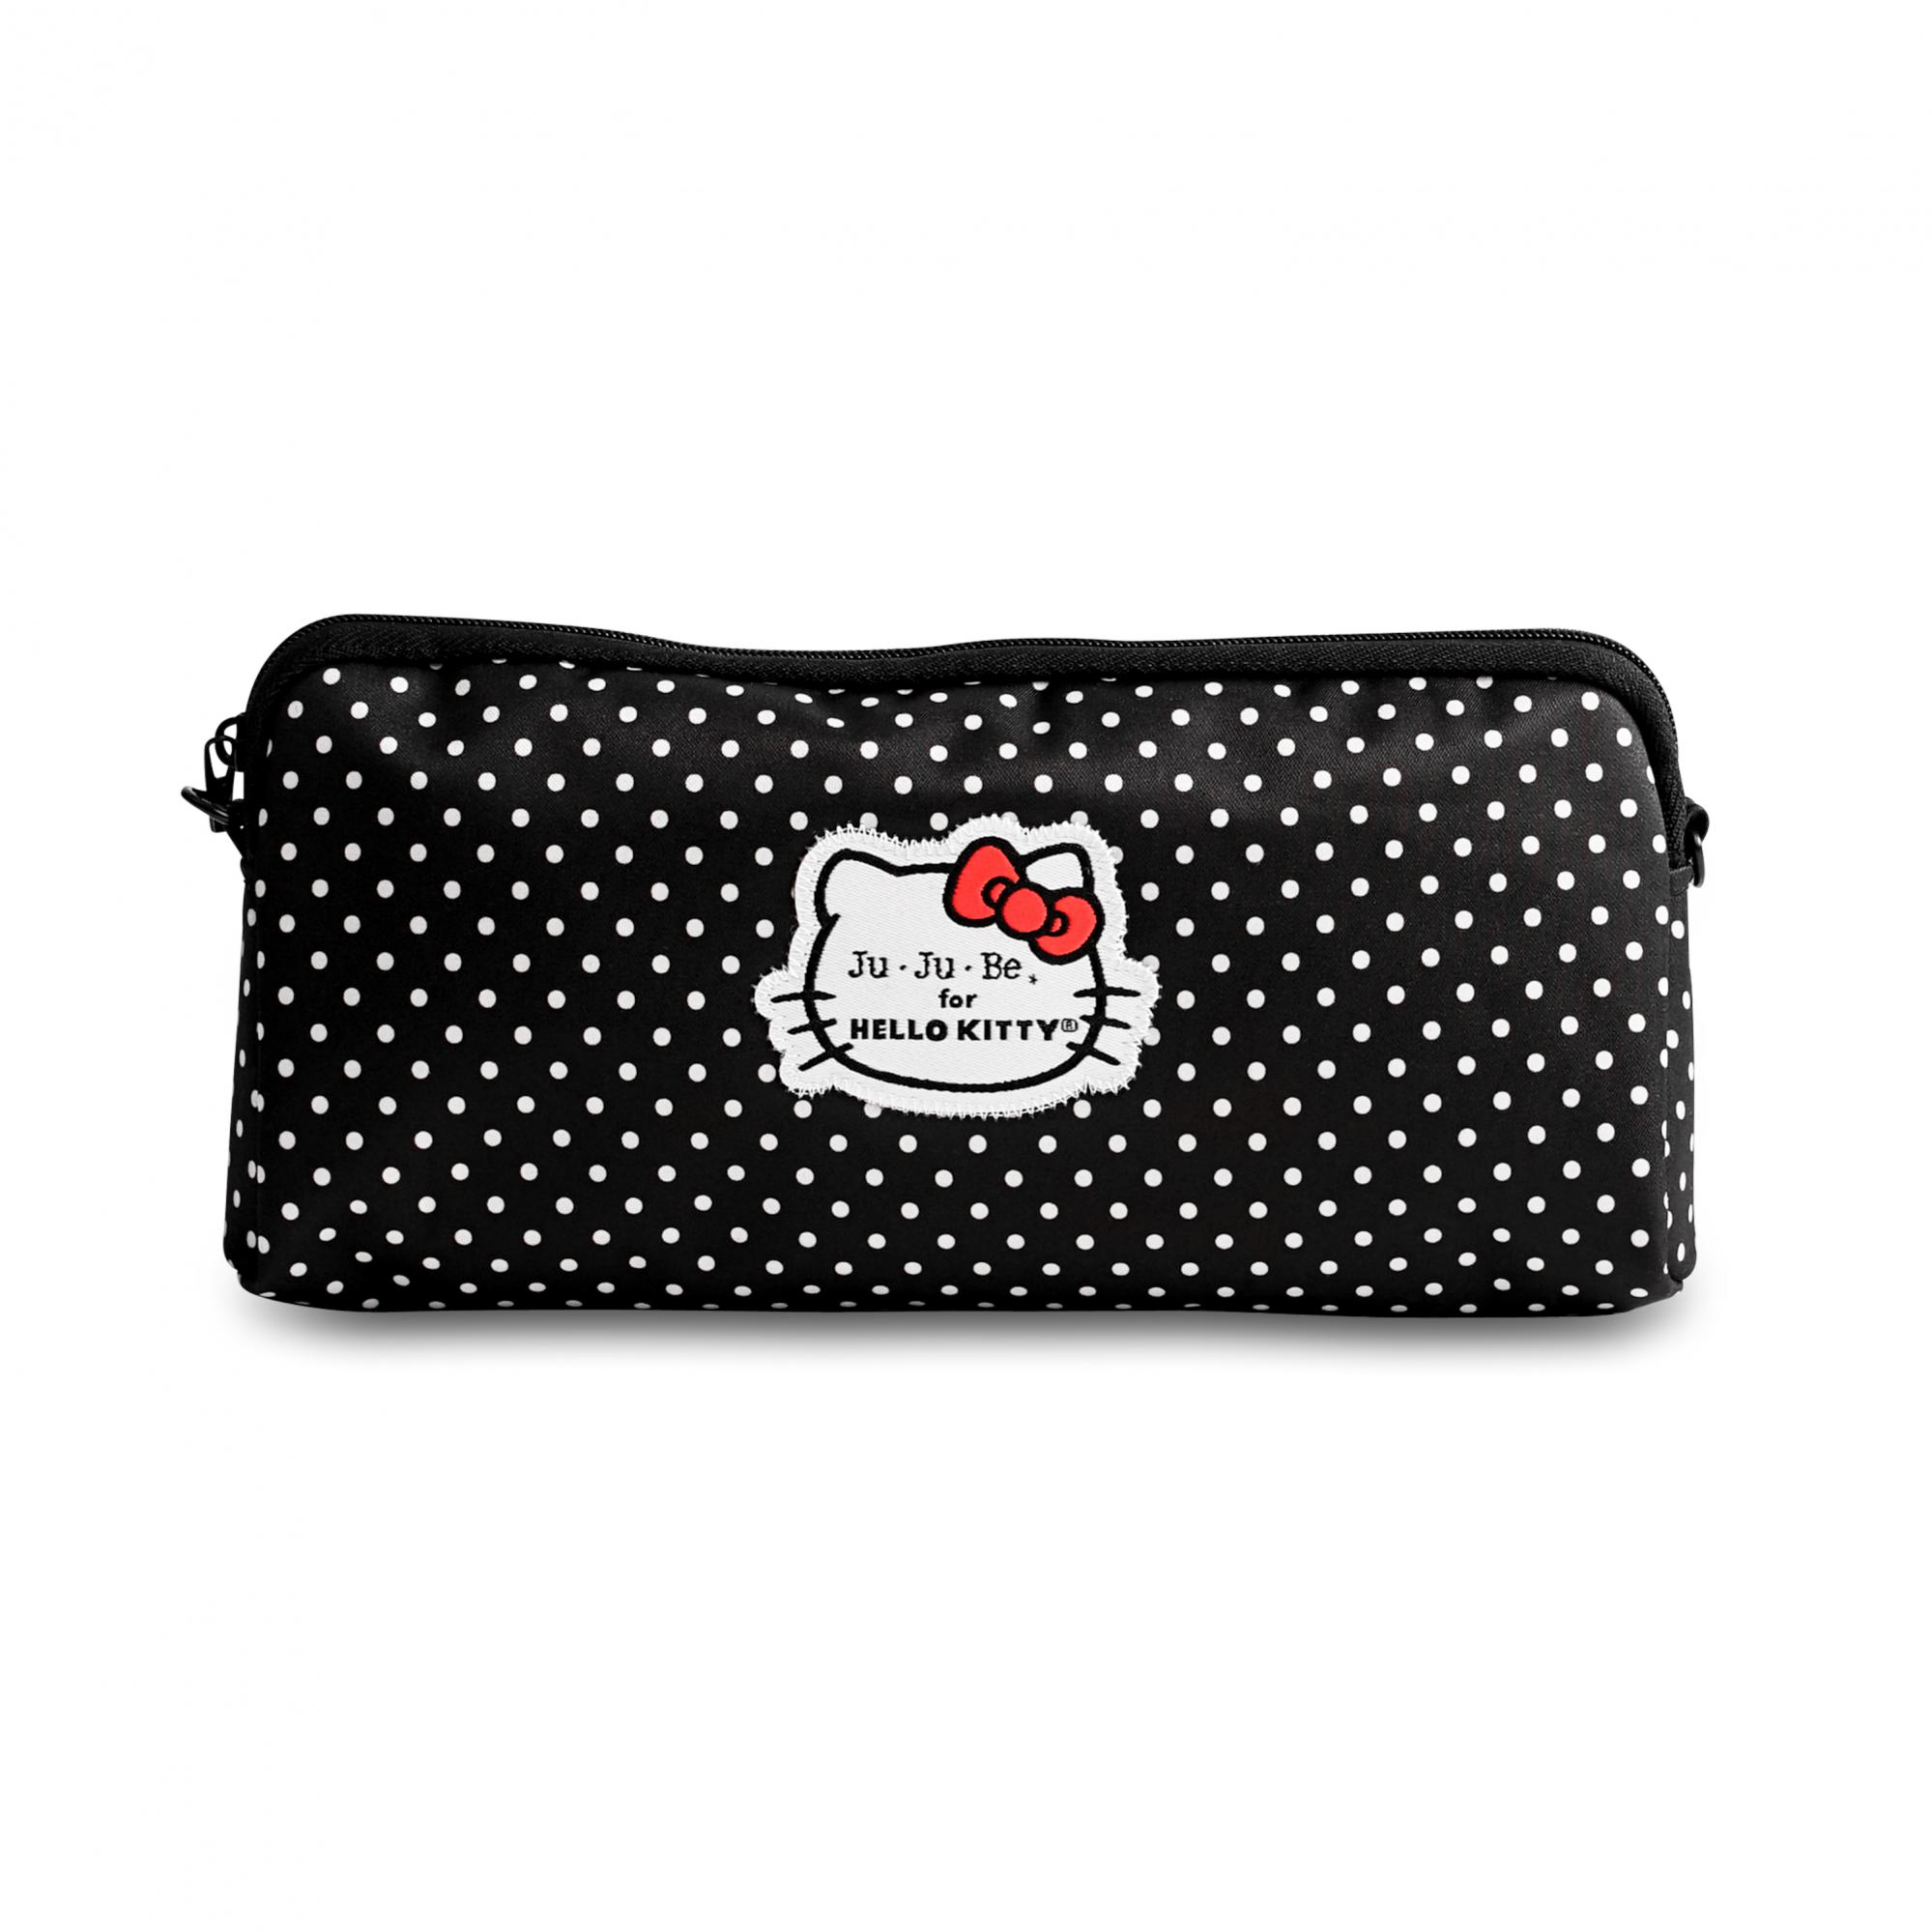 Ju Be Set Hello Kitty Dots Stripes Jujube Coin Purse Friends